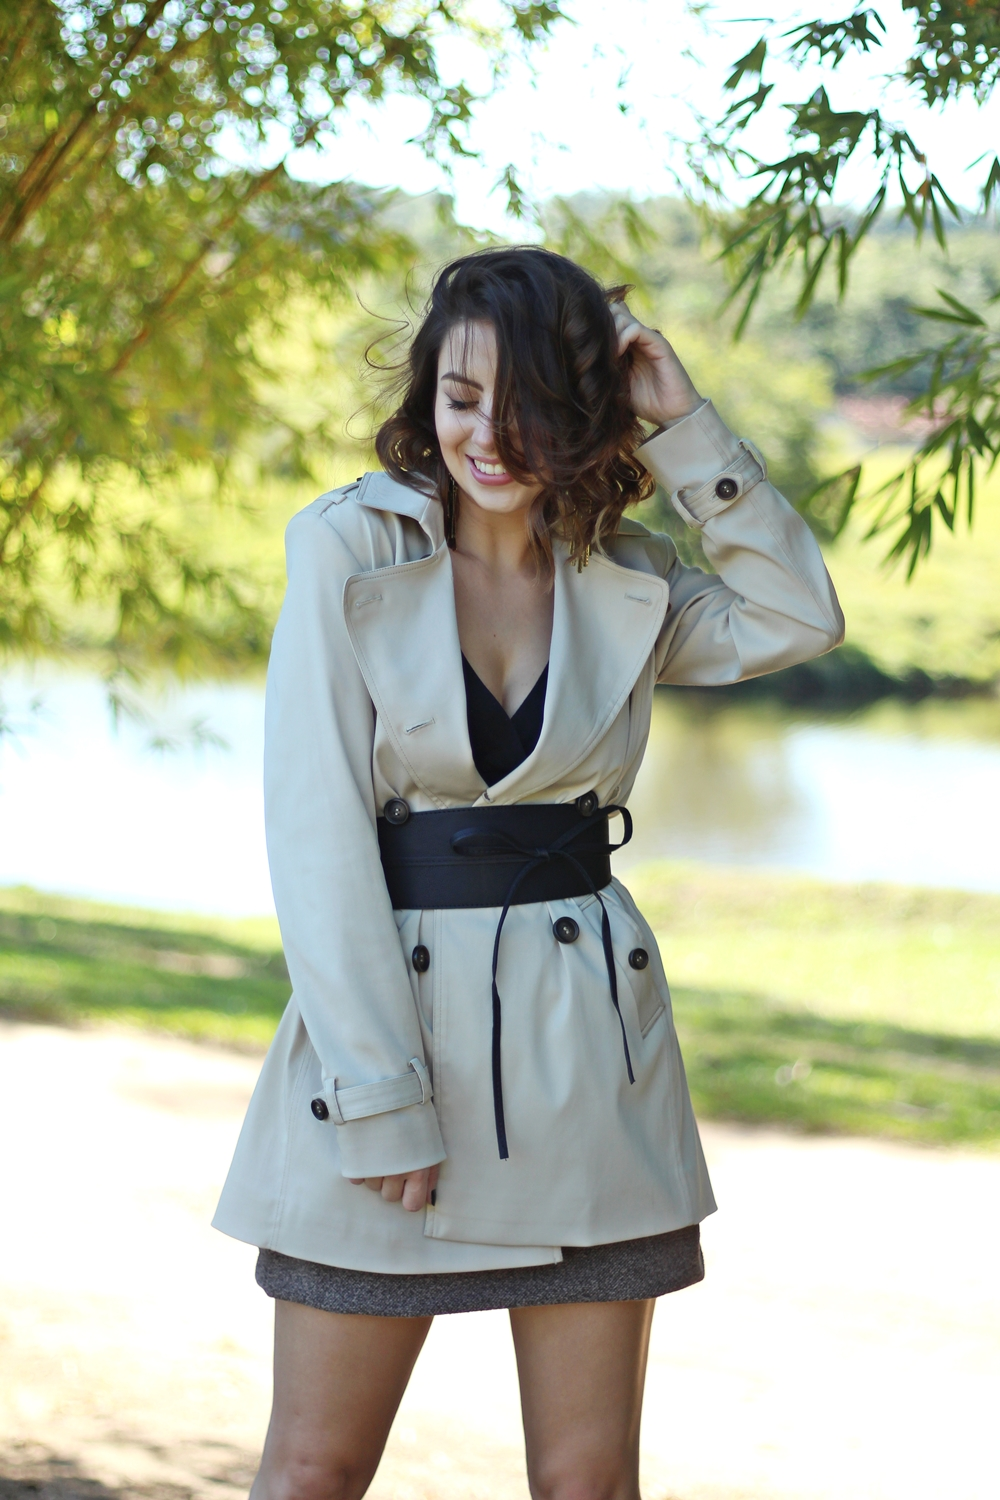 como-usar-trench-coat-look-noite-blog-van-duarte-1